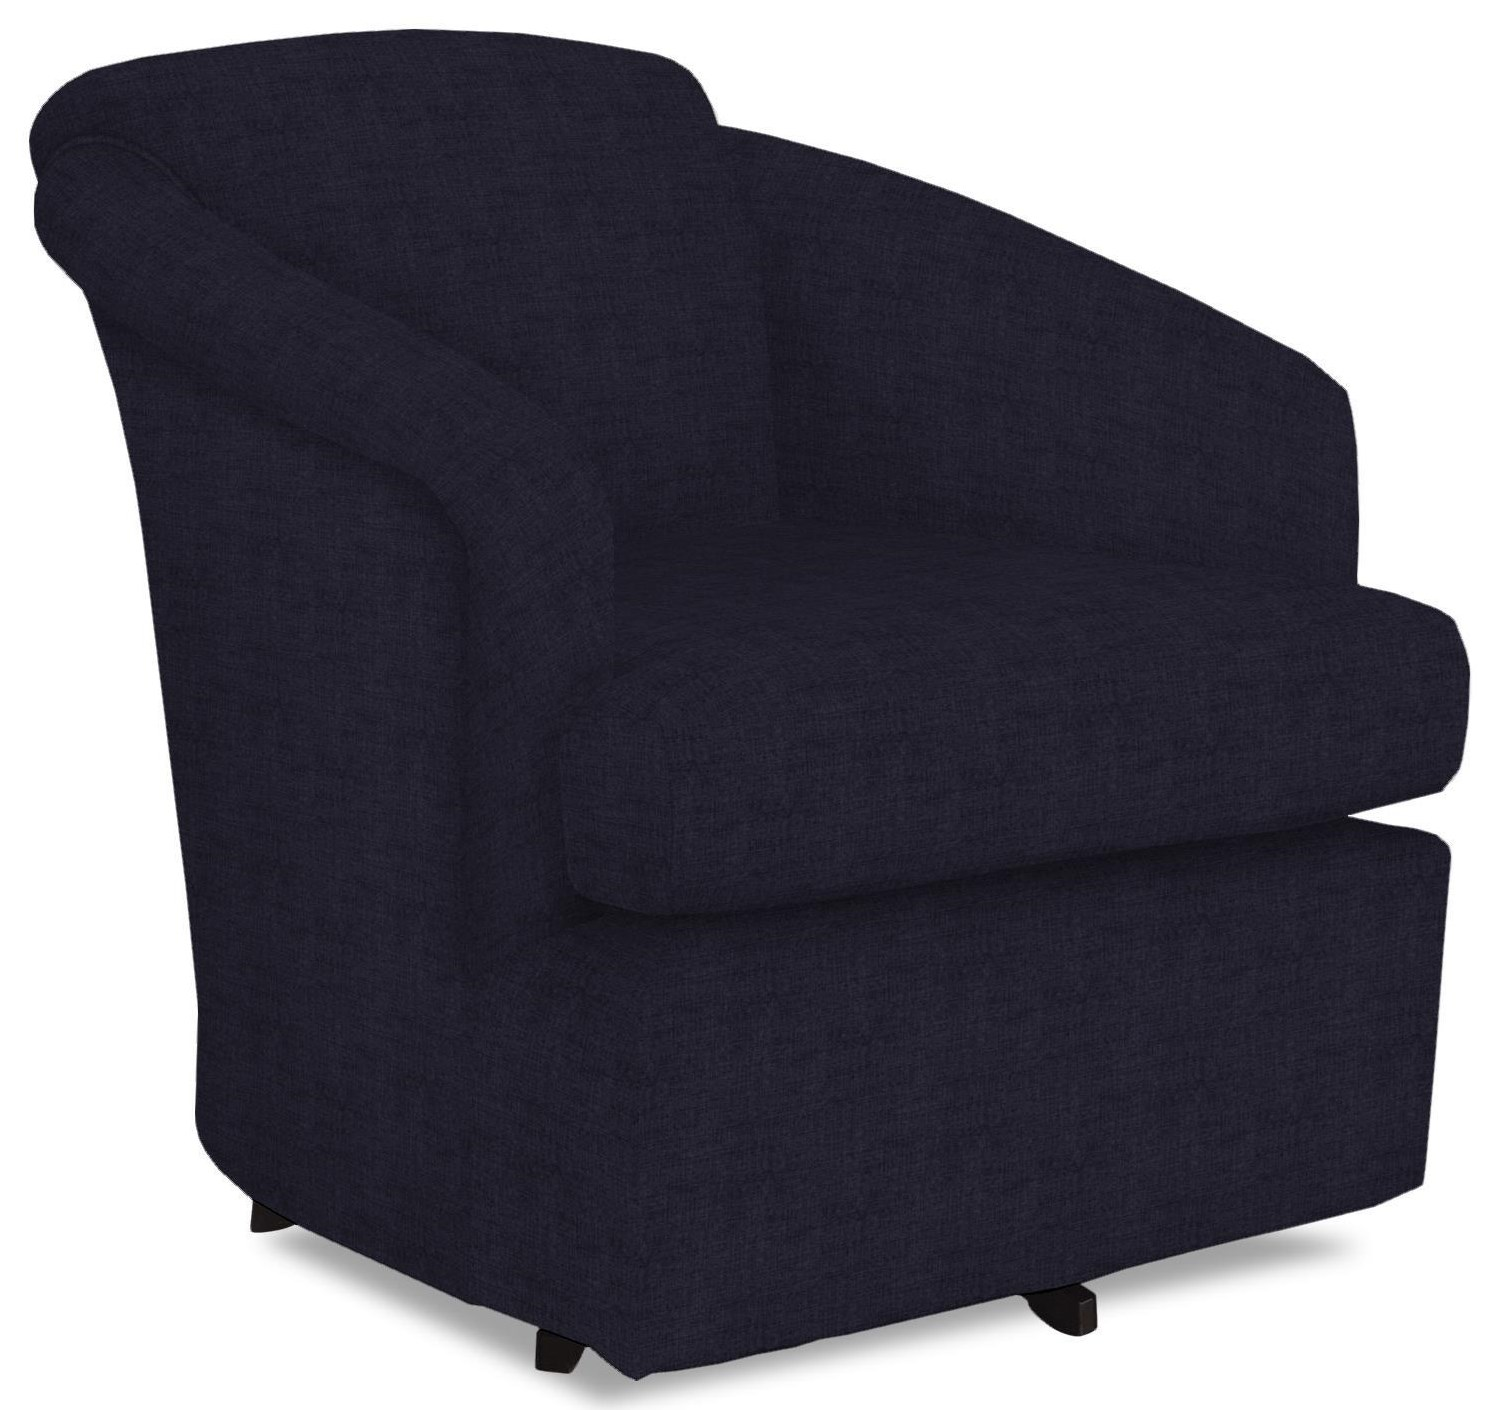 Chairs - Swivel Barrel Cass Swivel Barrel Chair by Best Home Furnishings at Wilcox Furniture